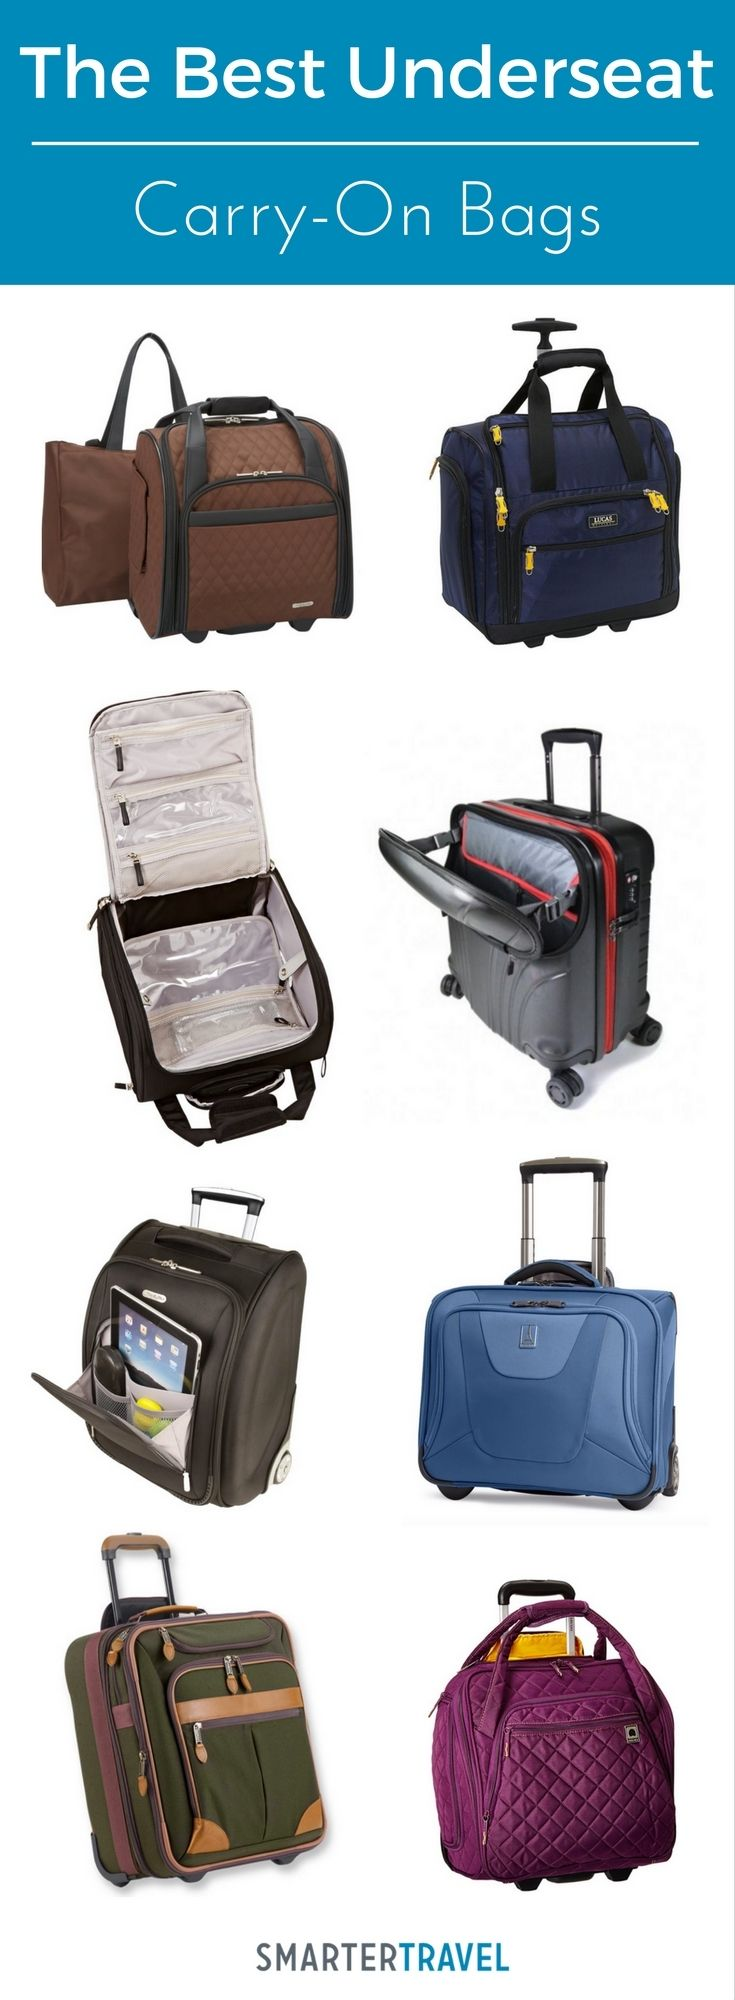 If you're worried your carry-on could be gate-checked on your next flight, check out these 10 top-rated underseat carry-on bags.